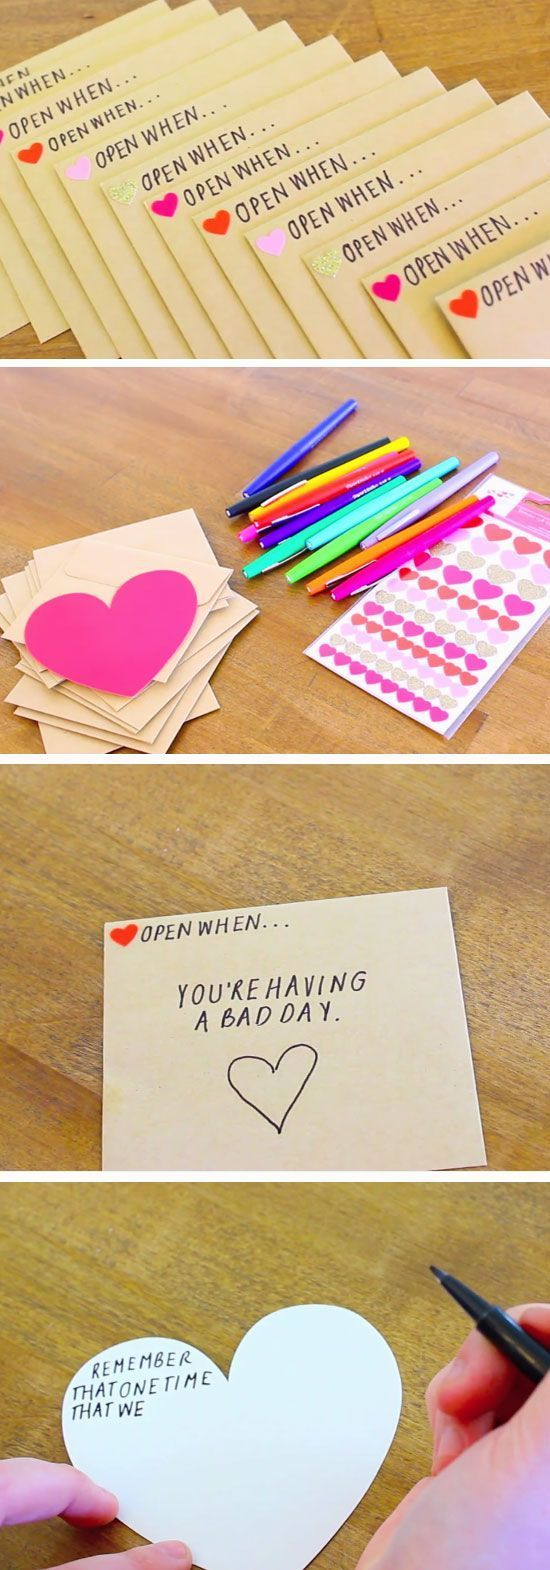 Creative Valentines day Gifts for Him #valentinesideas #valentinesgift #valentinesday